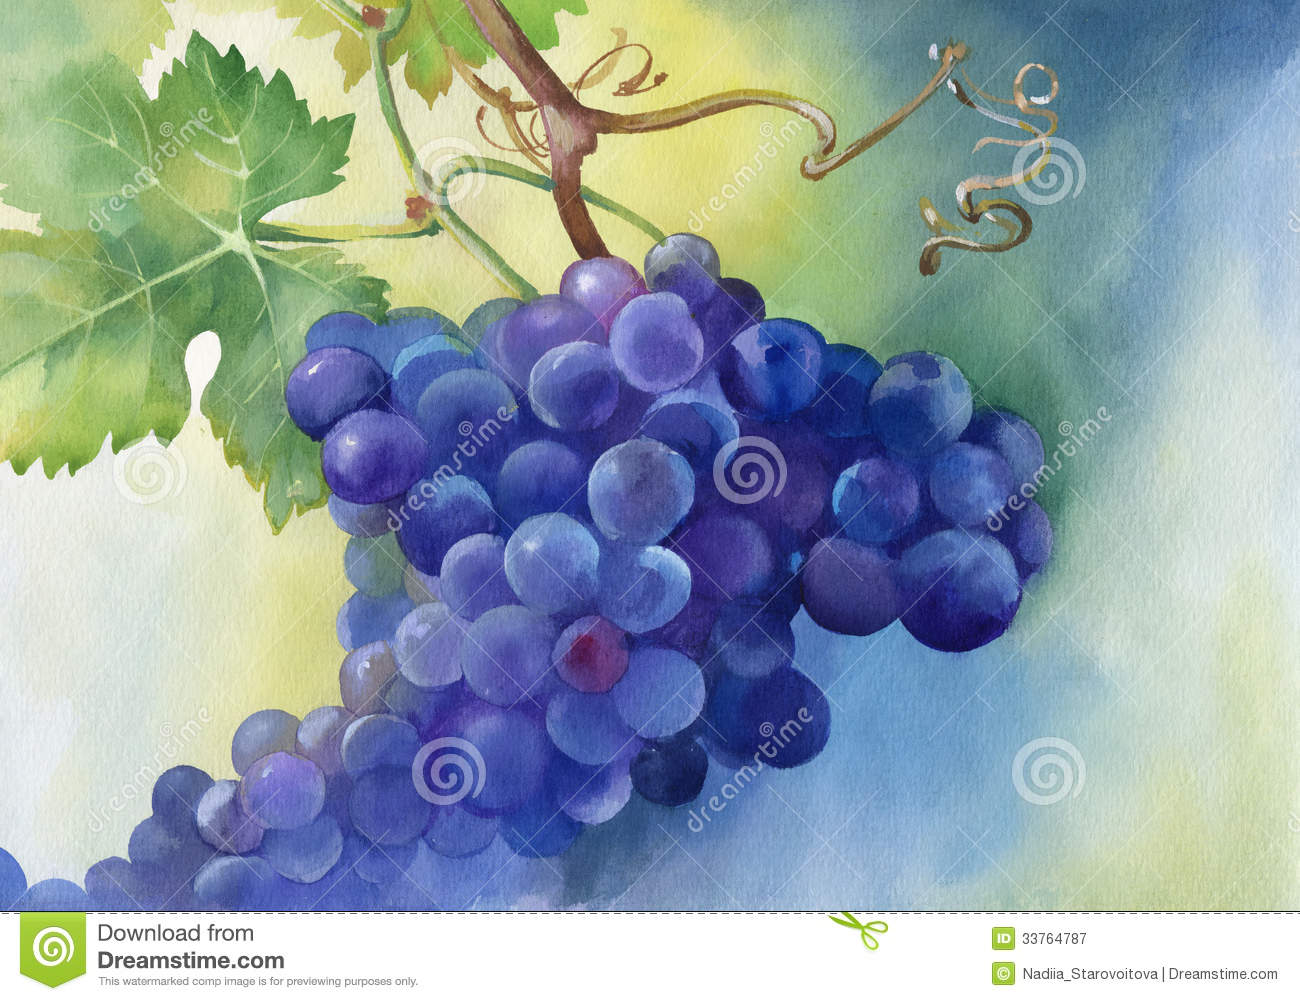 How To Paint Grapes With Acrylic